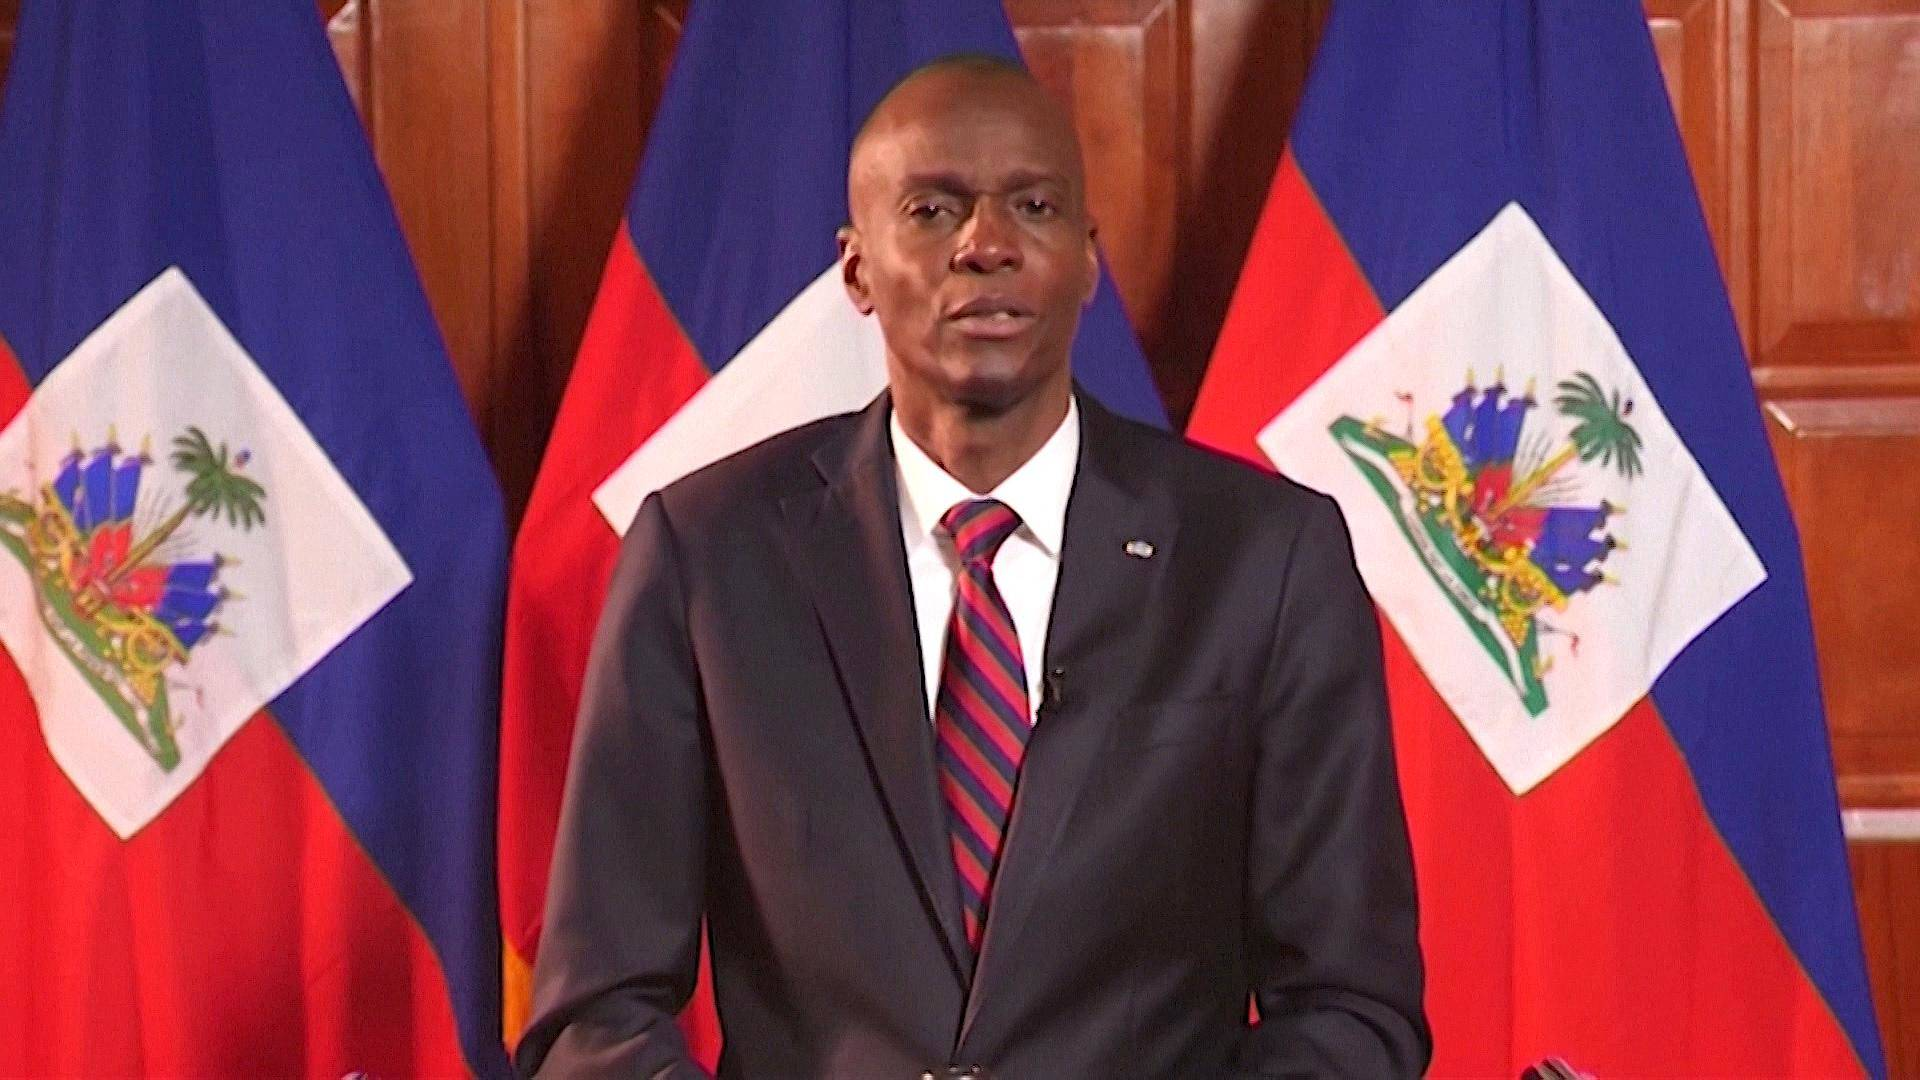 Read more about the article Jovenel Moïse Dead: Haitian President Assassinated, Plunging Country into New Political Crisis